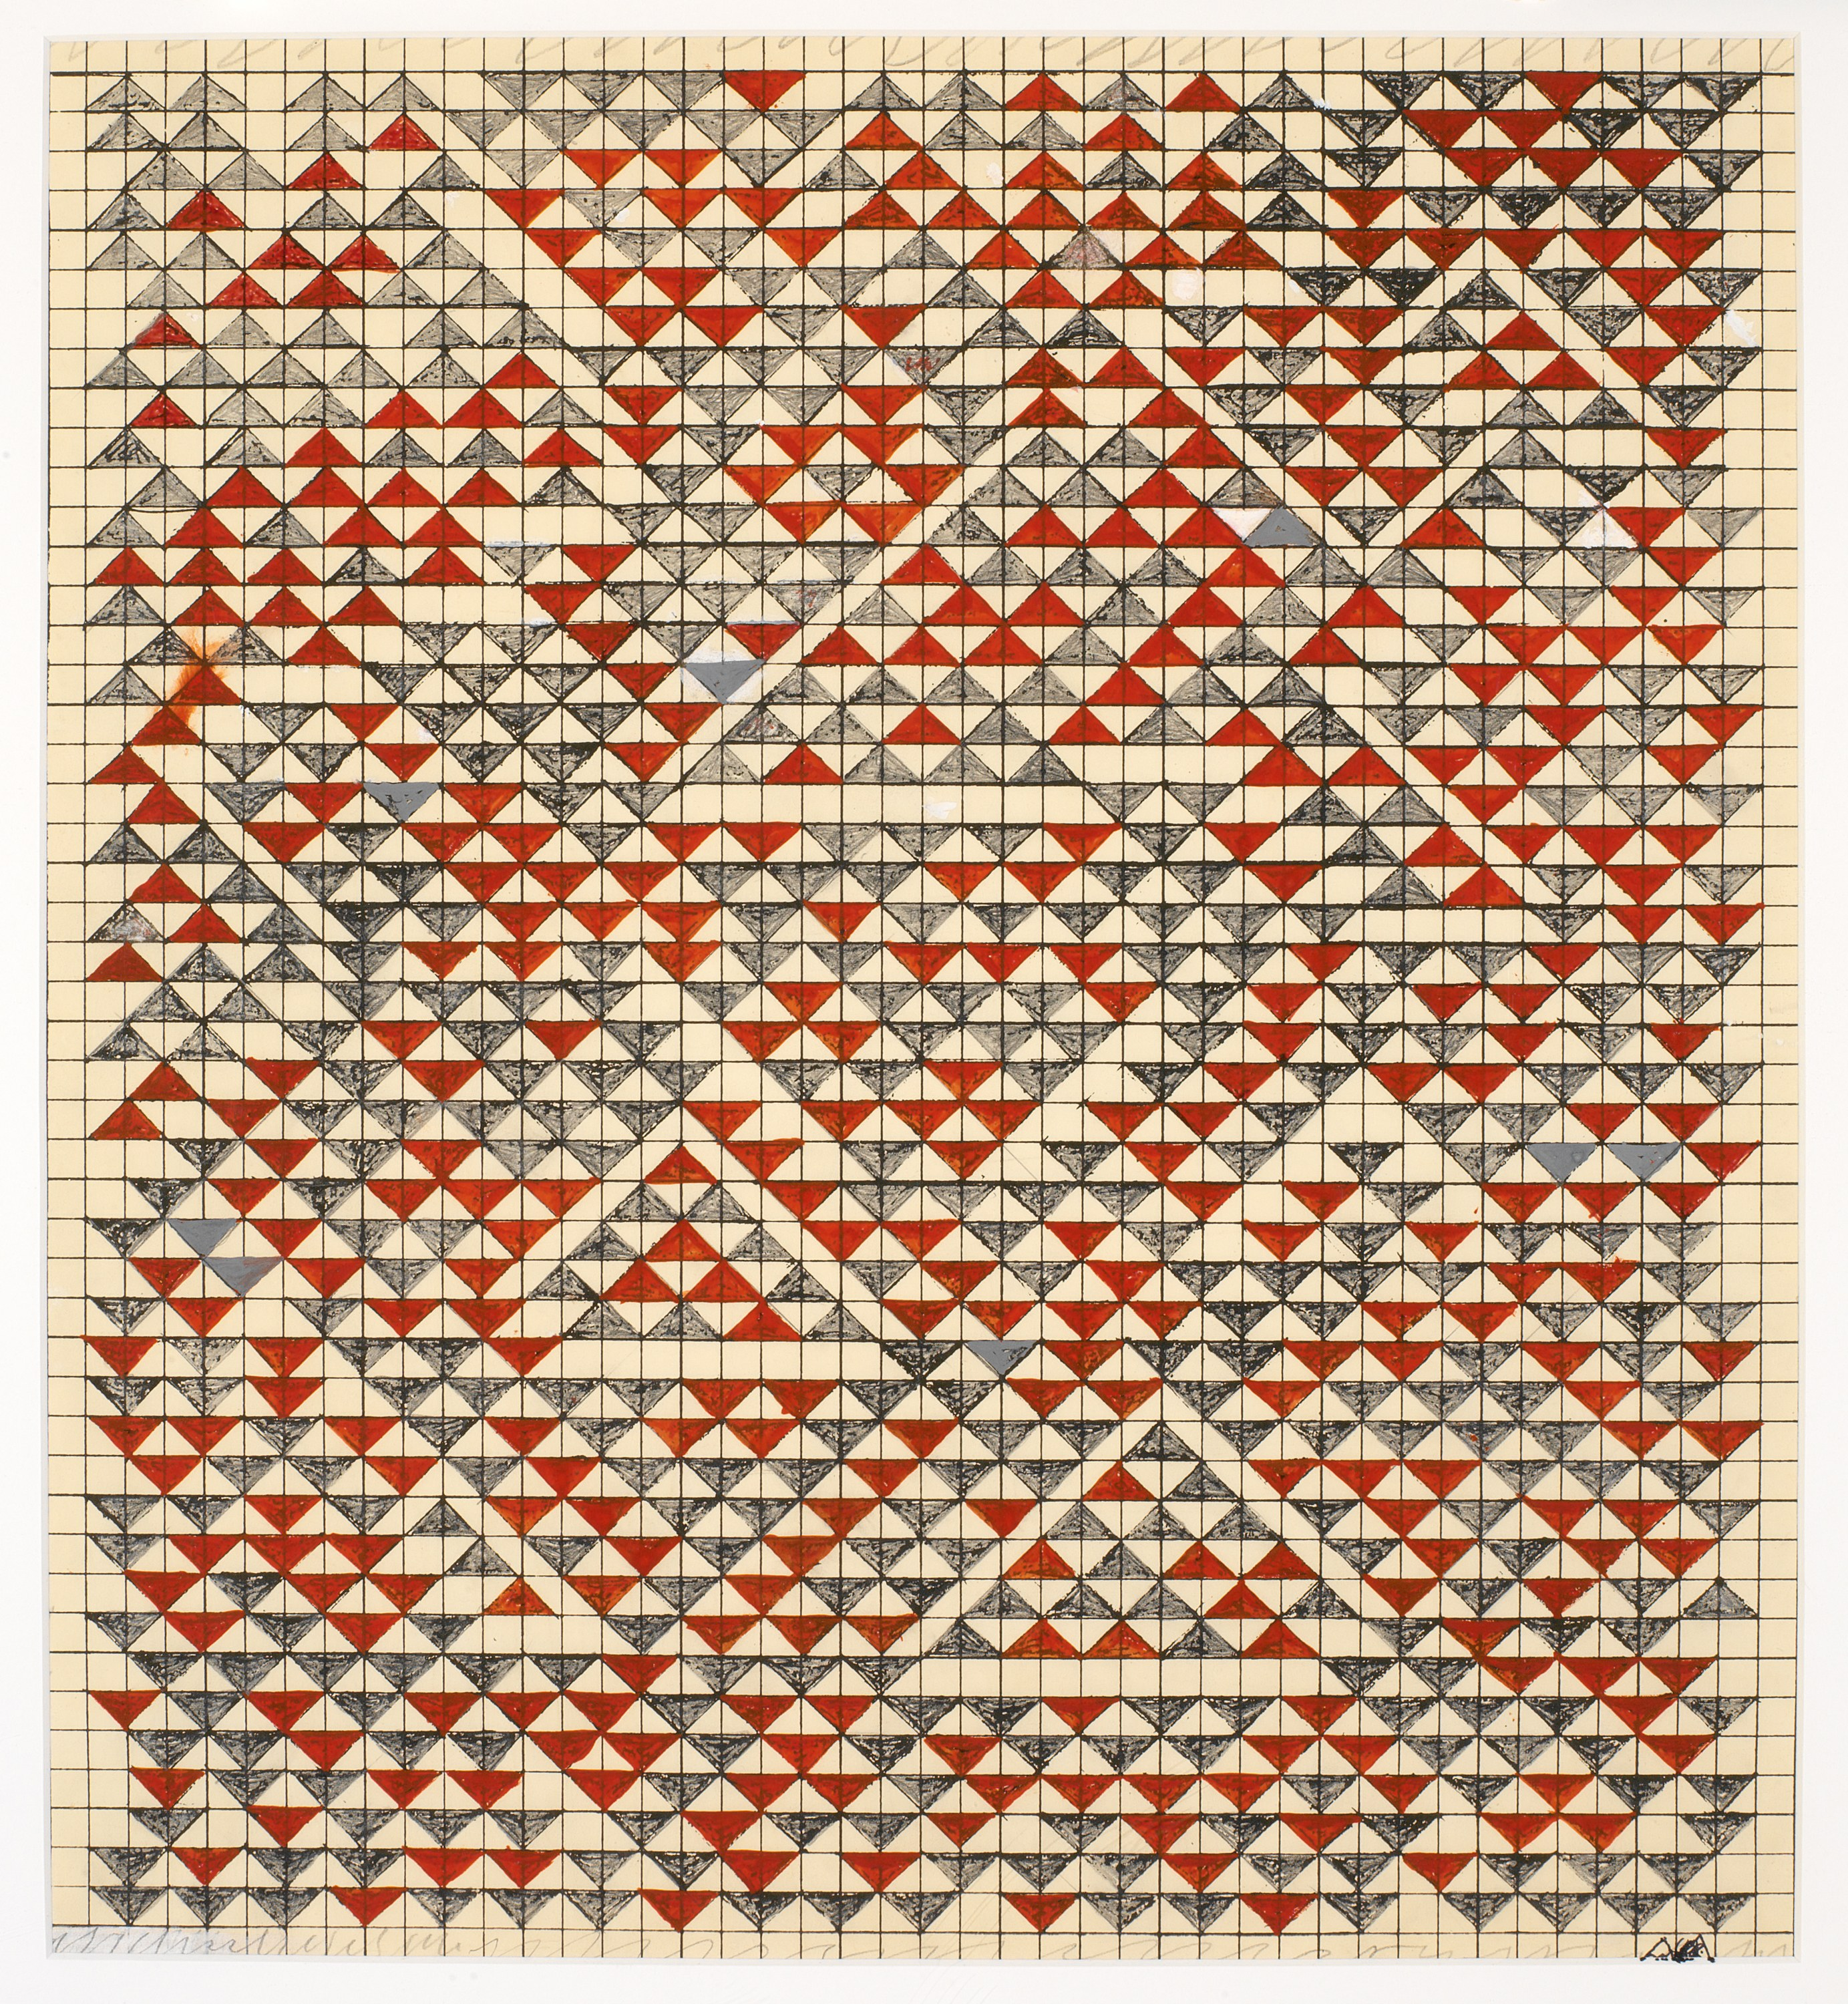 Anni albers leading textile artist of the 20th century public anni albers study for camino real 1967 gouache on blueprint graph paper malvernweather Image collections